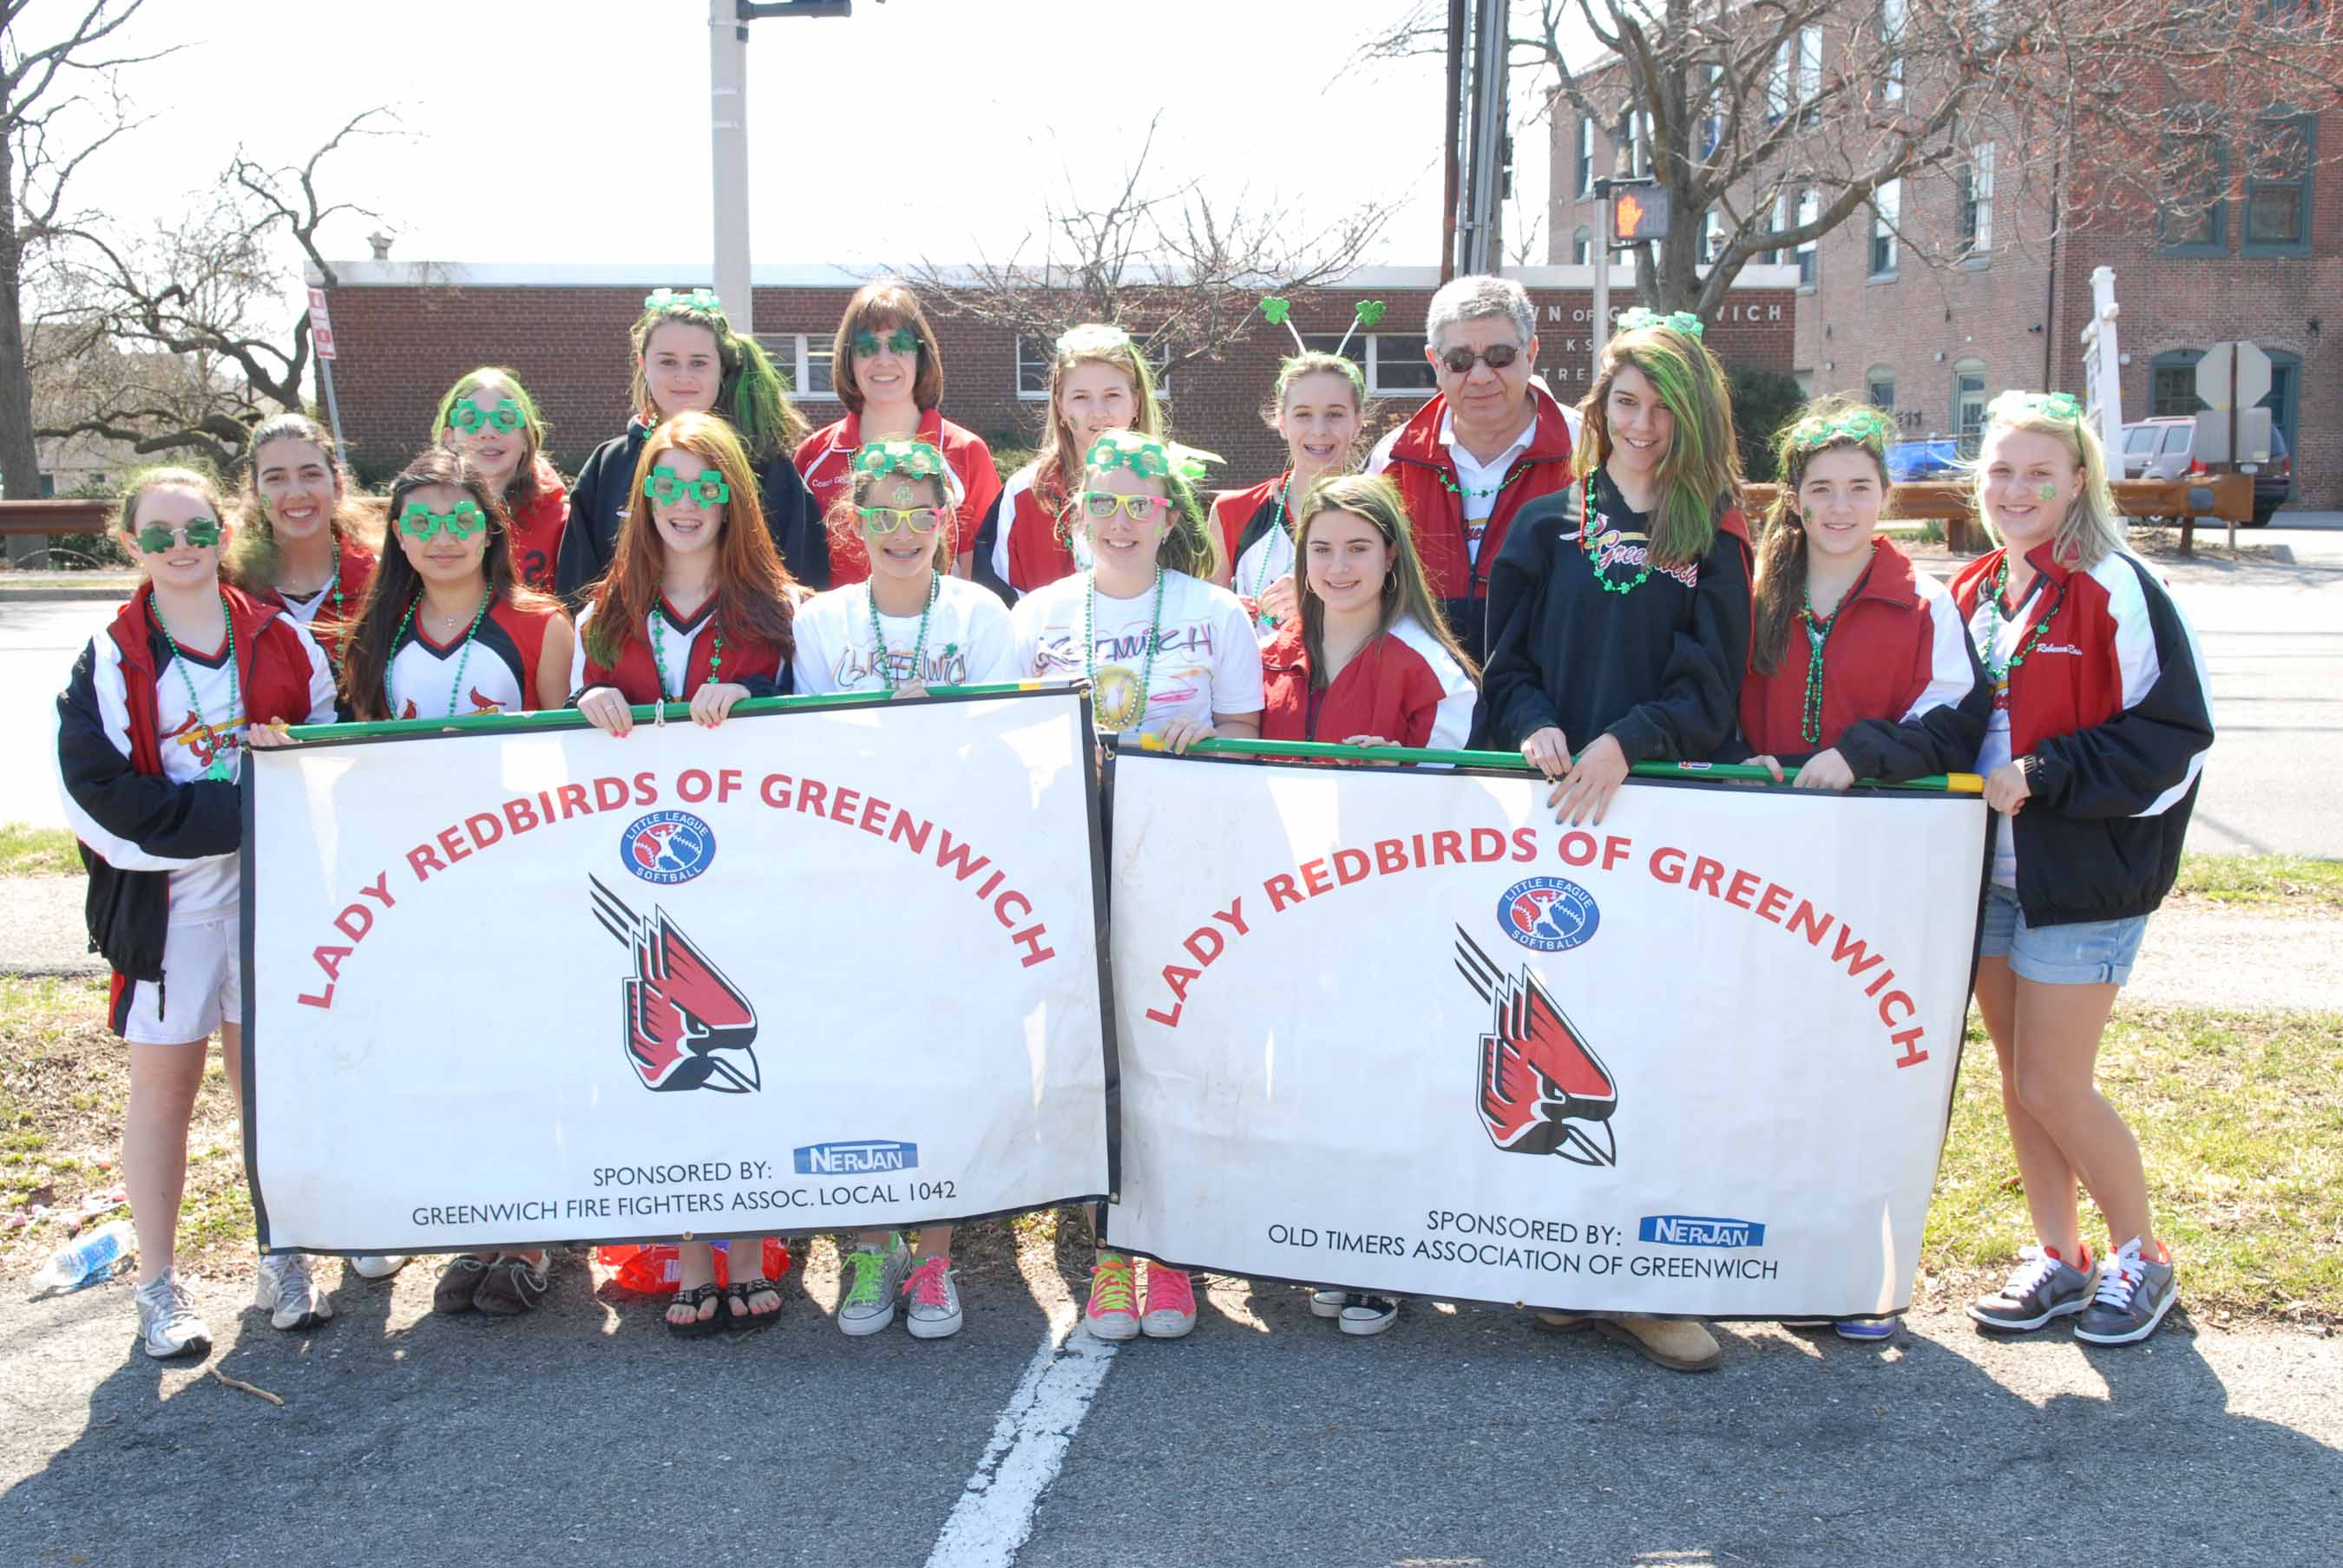 Greenwich LL softball at St. Patrick's Day parade